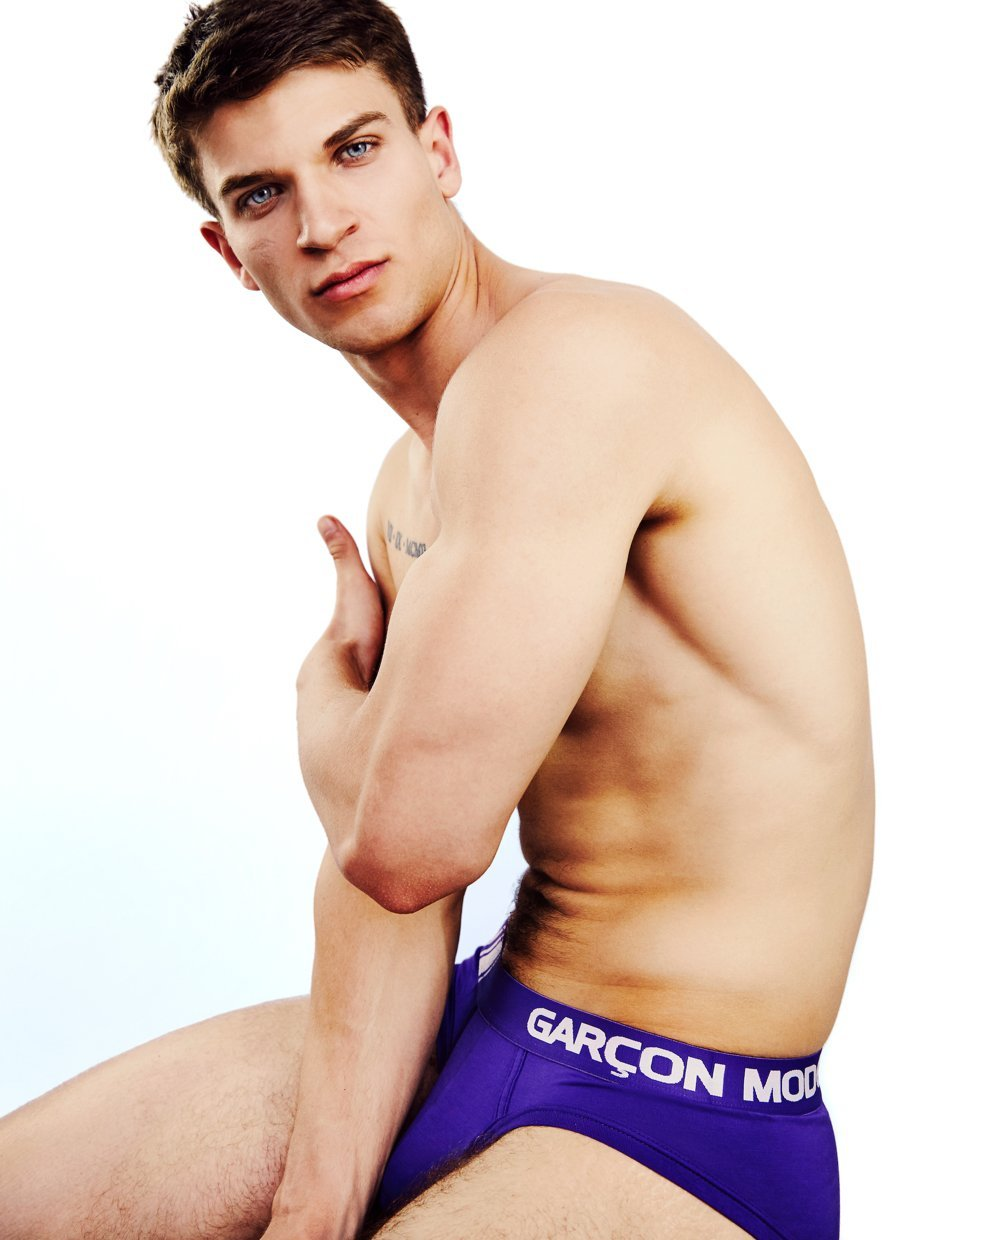 Purple Elite Sport Brief - Garçon Underwear sexy men's underwear Briefs Garçon Underwear